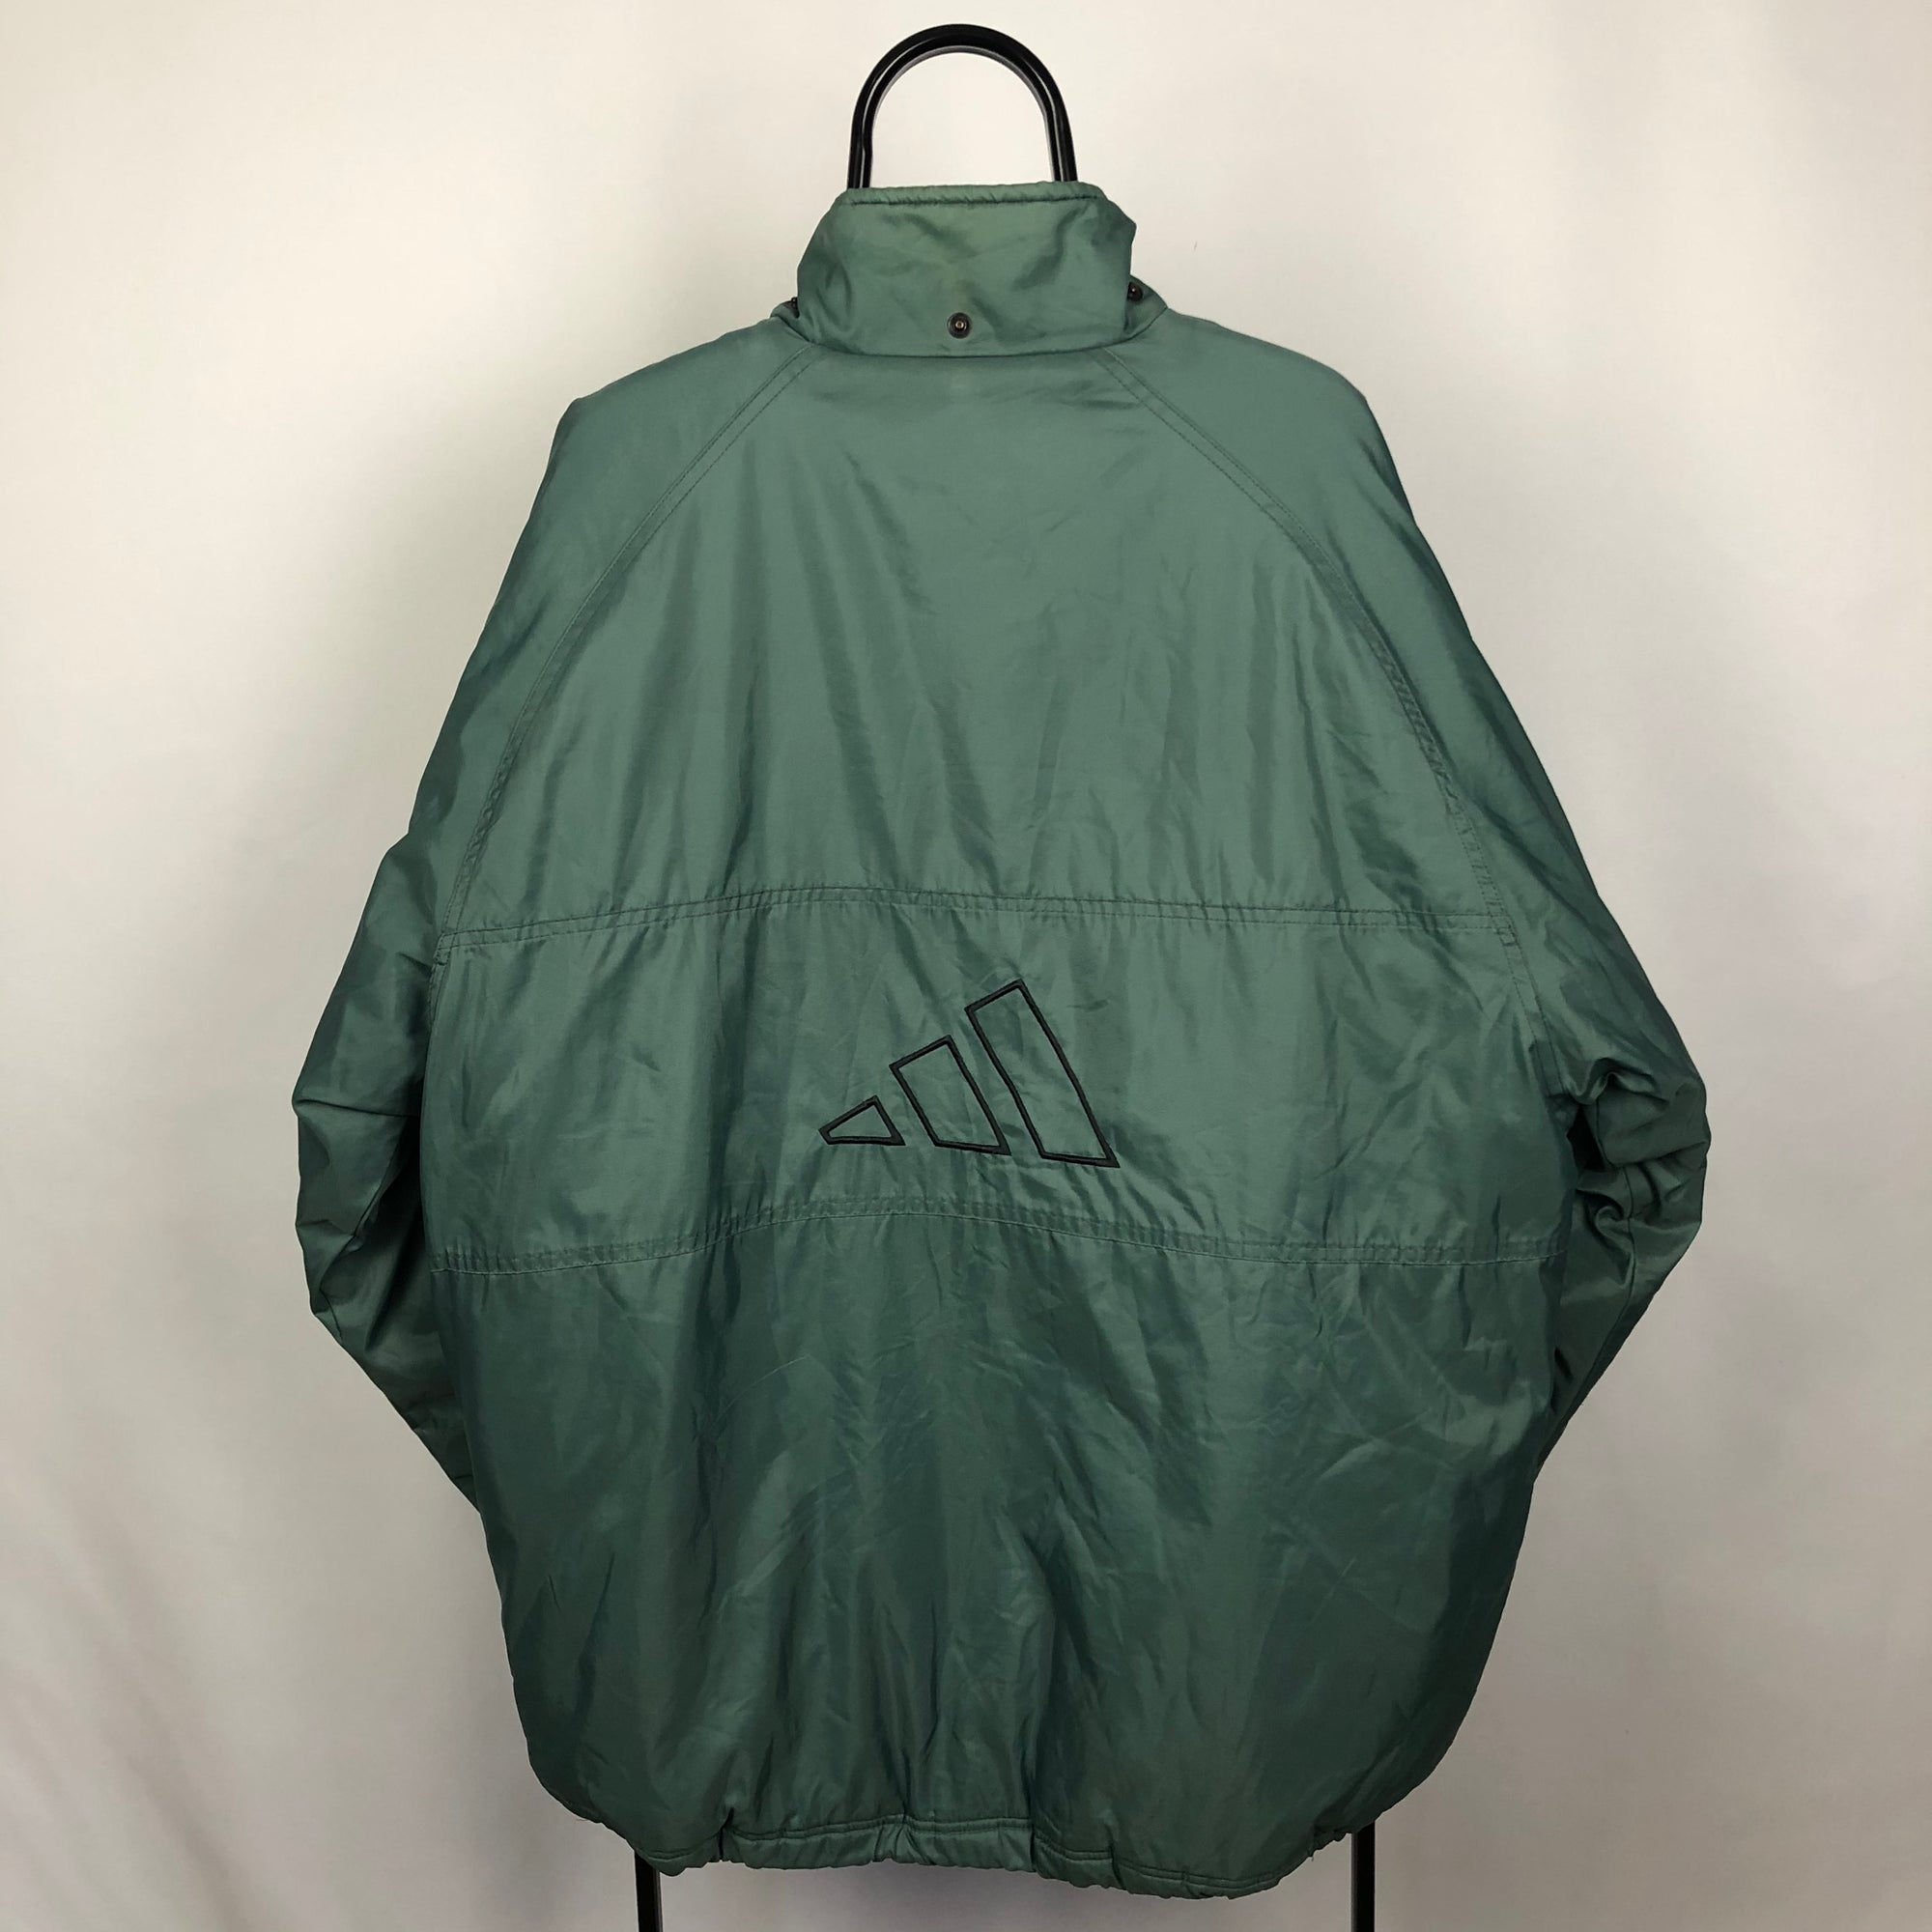 Vintage Adidas Green Puffer Jacket - Men's XL/Women's XXL